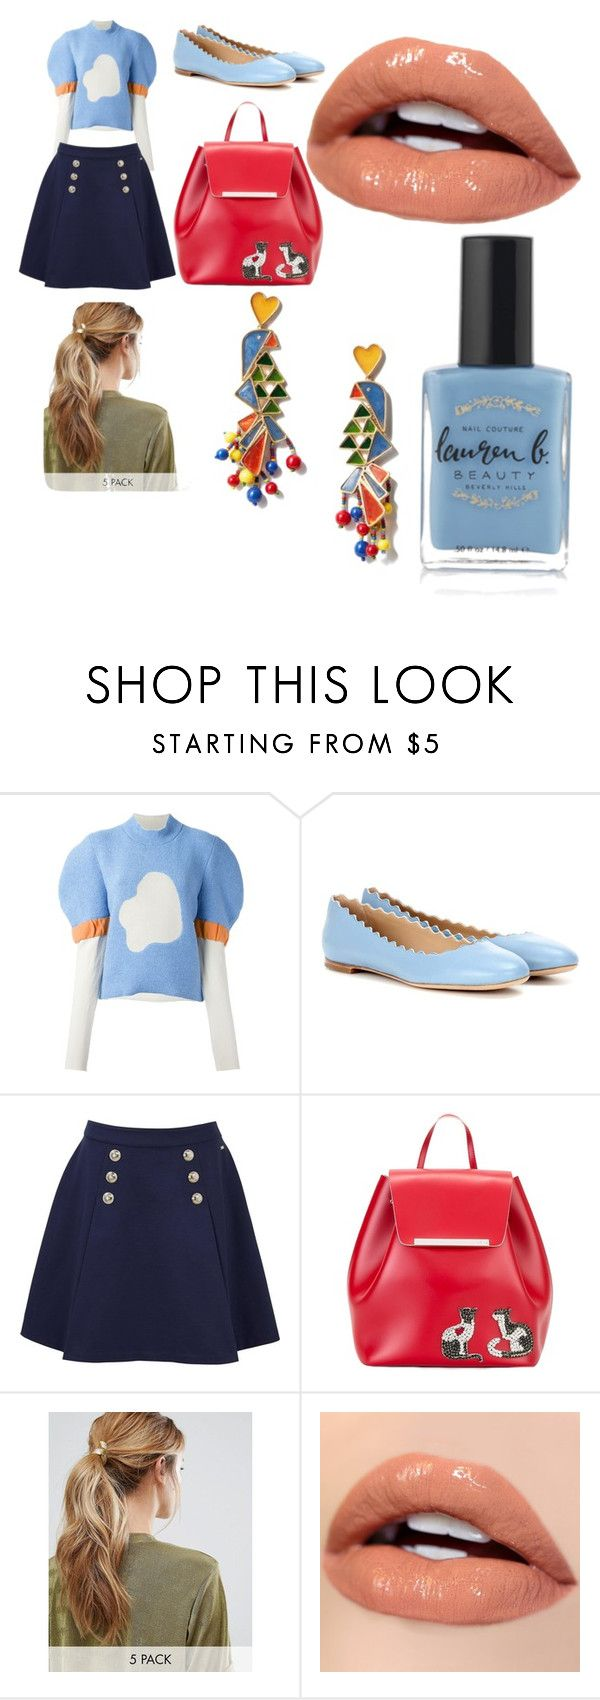 """Untitled #3"" by juliafomina ❤ liked on Polyvore featuring J.W. Anderson, Chloé, Tommy Hilfiger, N°21, Kitsch, Tory Burch and Lauren B. Beauty"